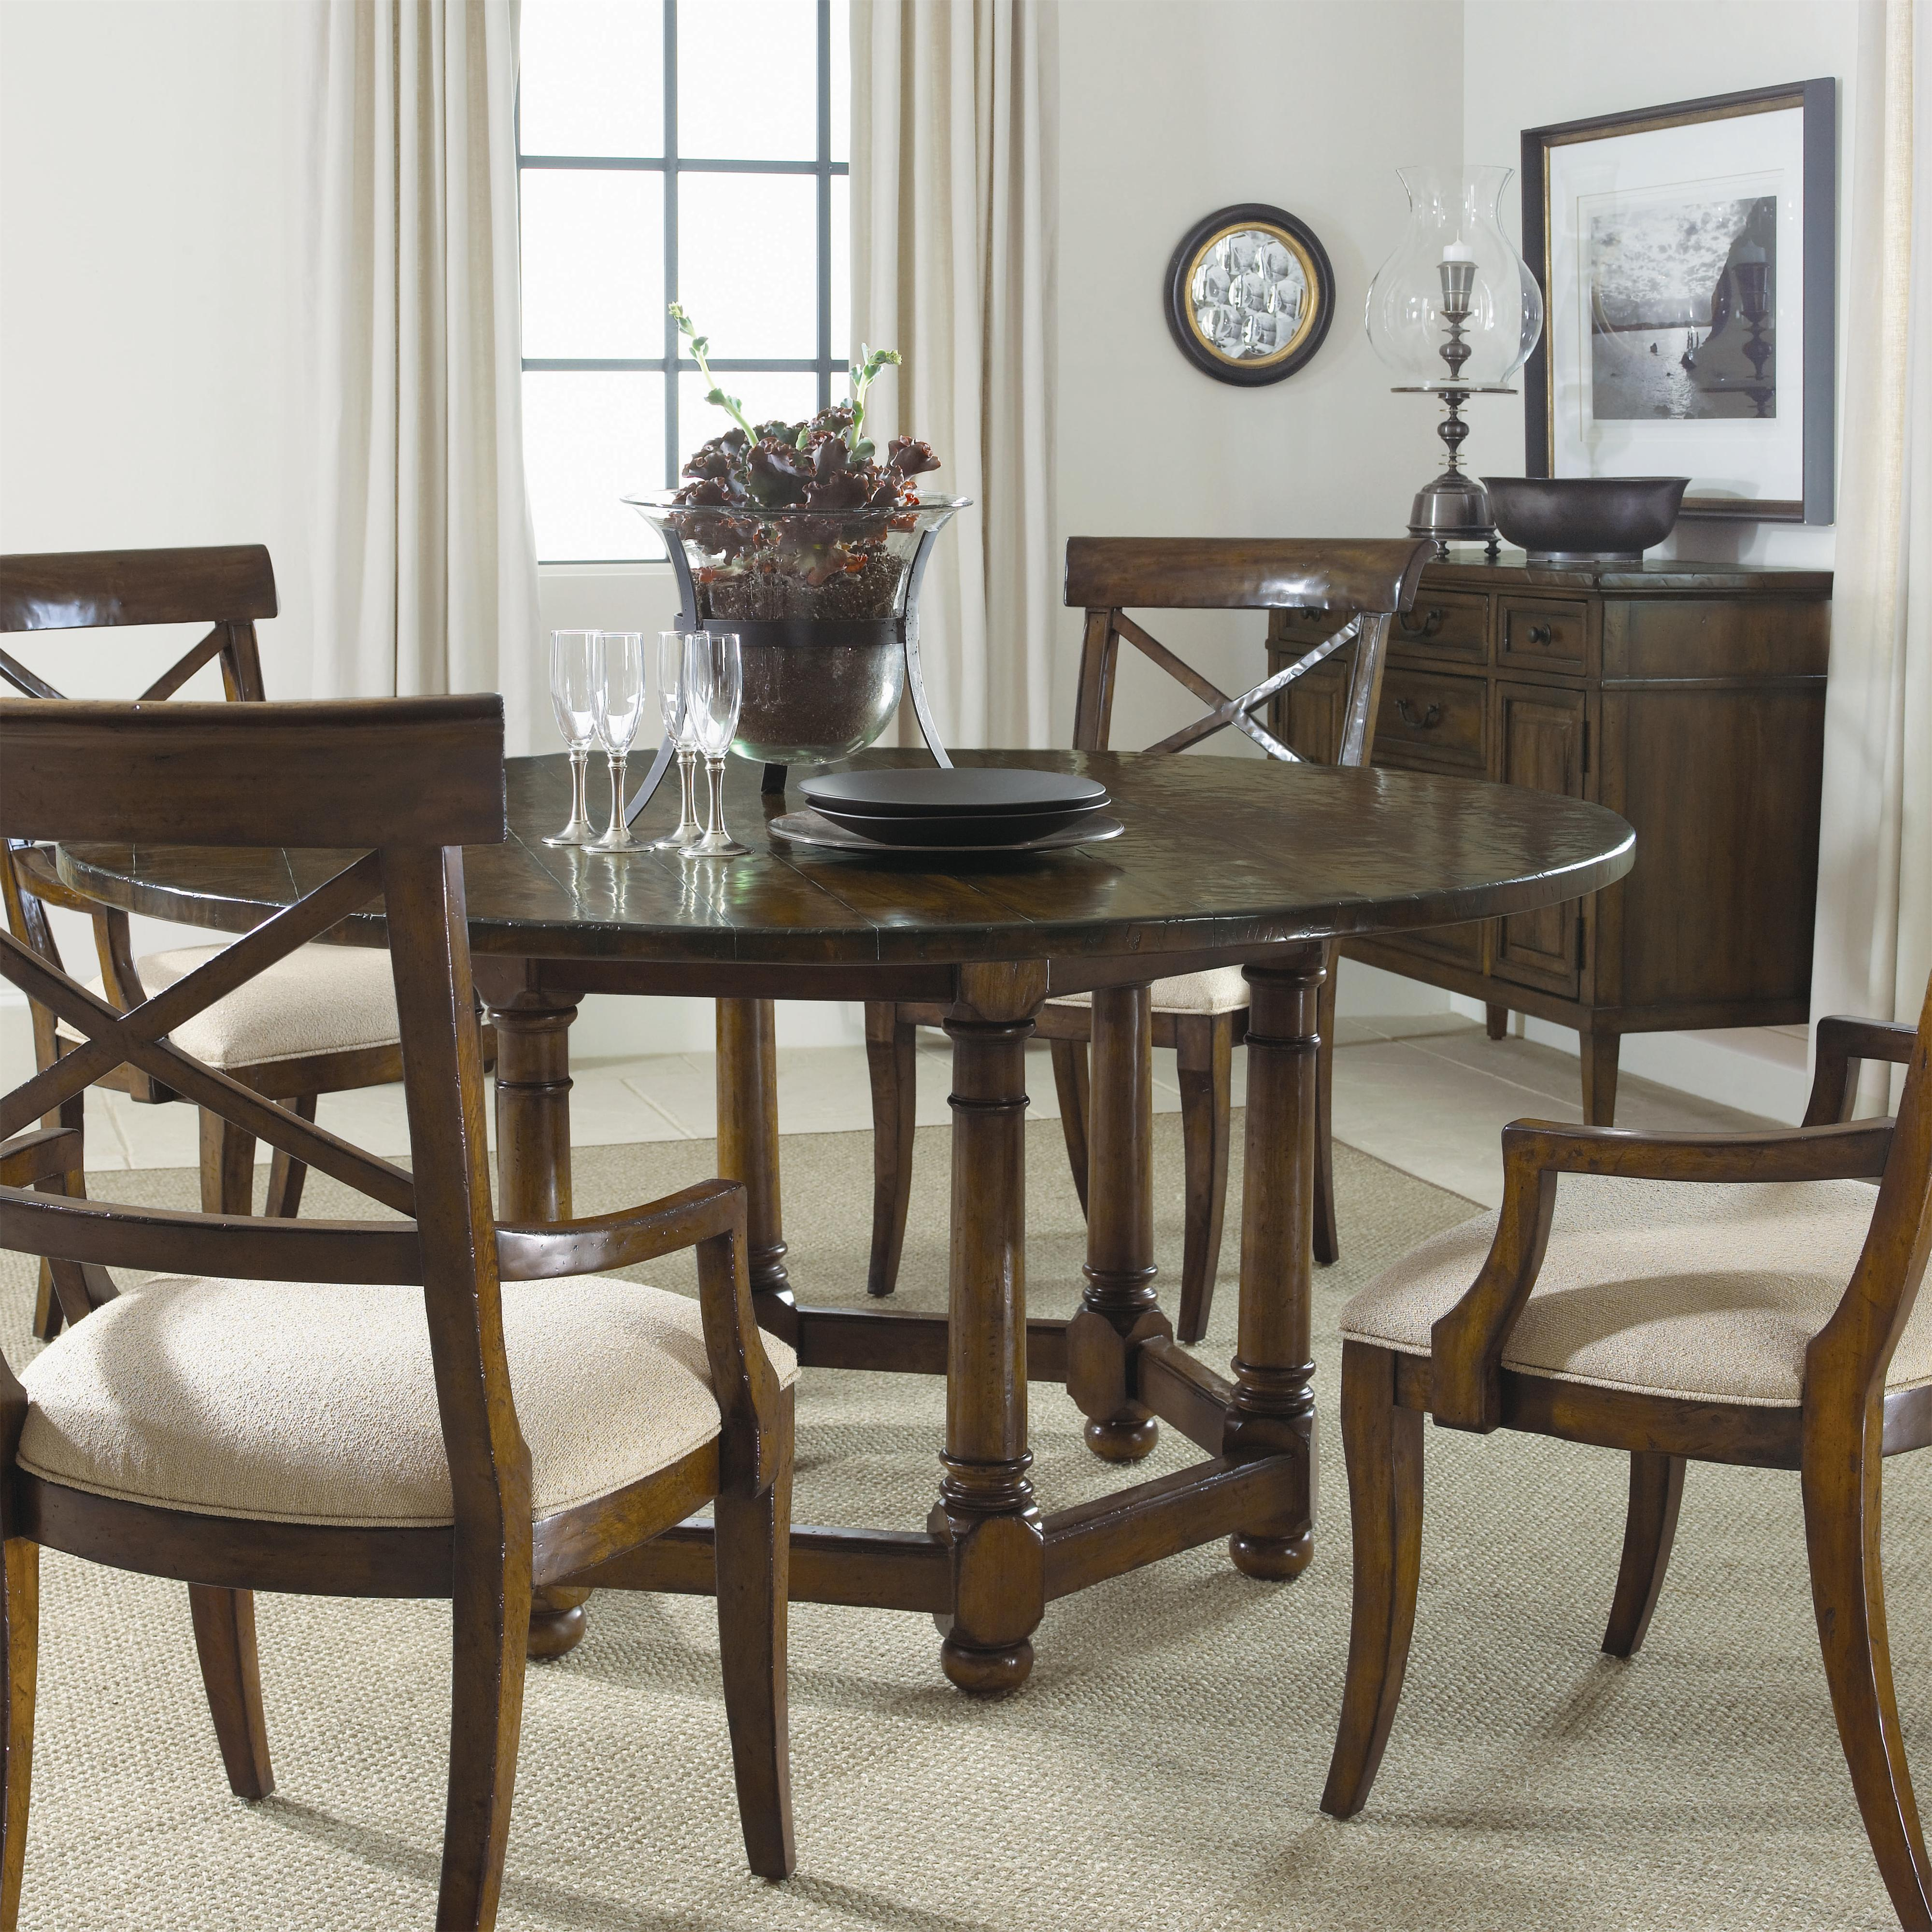 Bernhardt vintage patina quot round dining room table